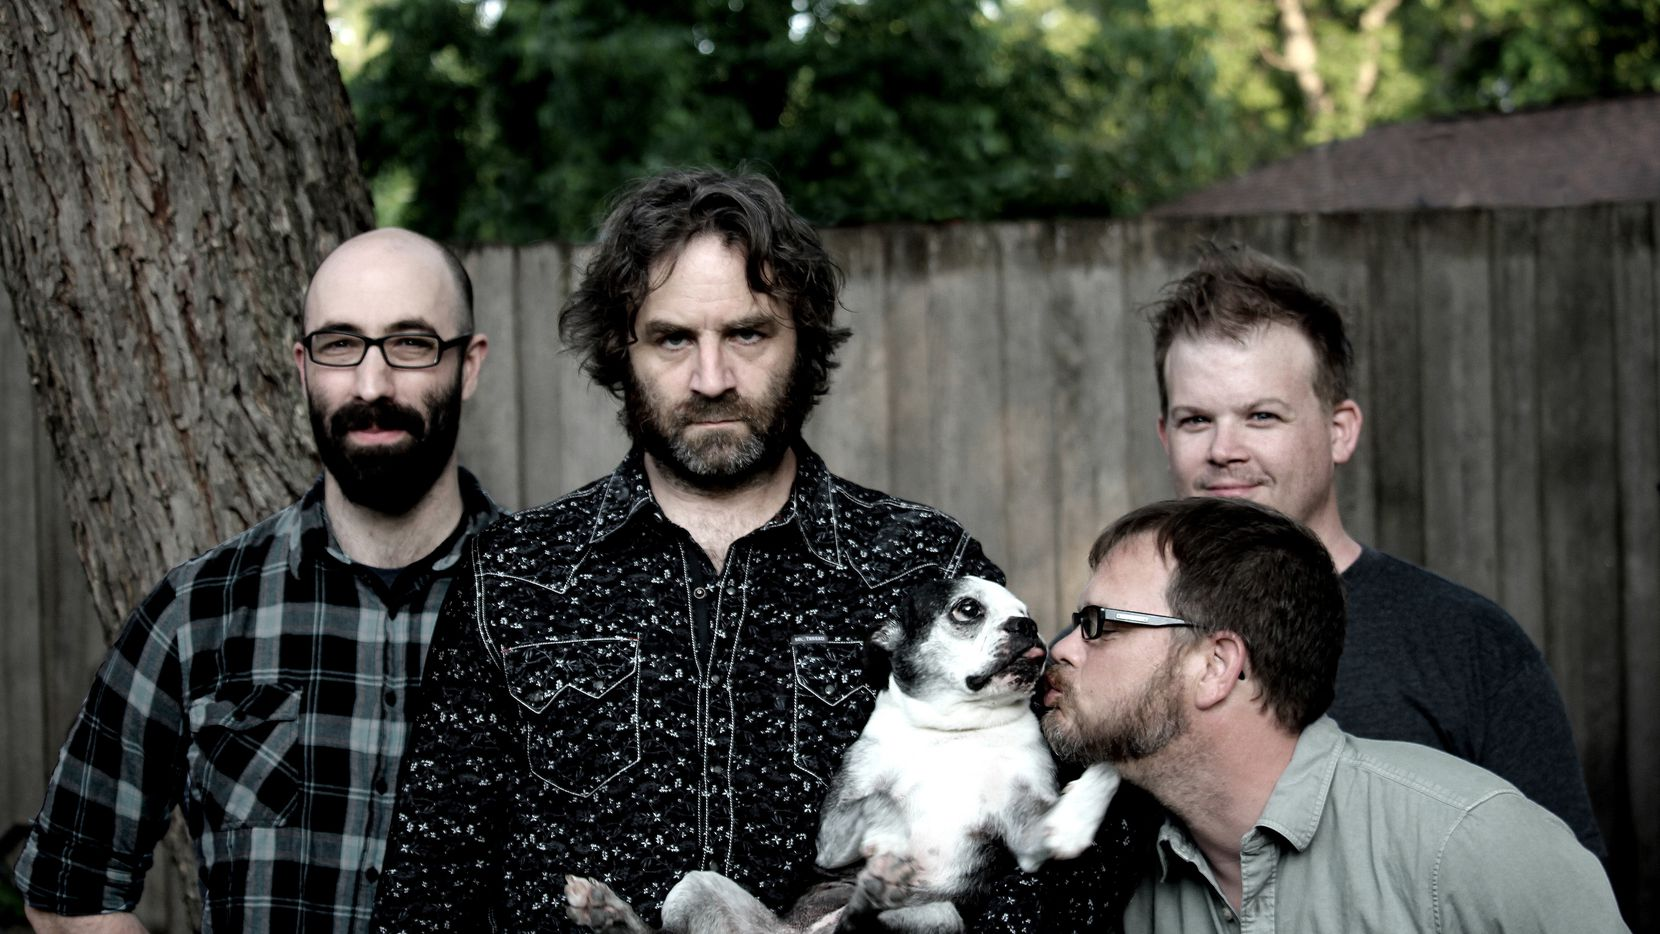 Dallas rock band American Werewolf Academy has a new album out next month.